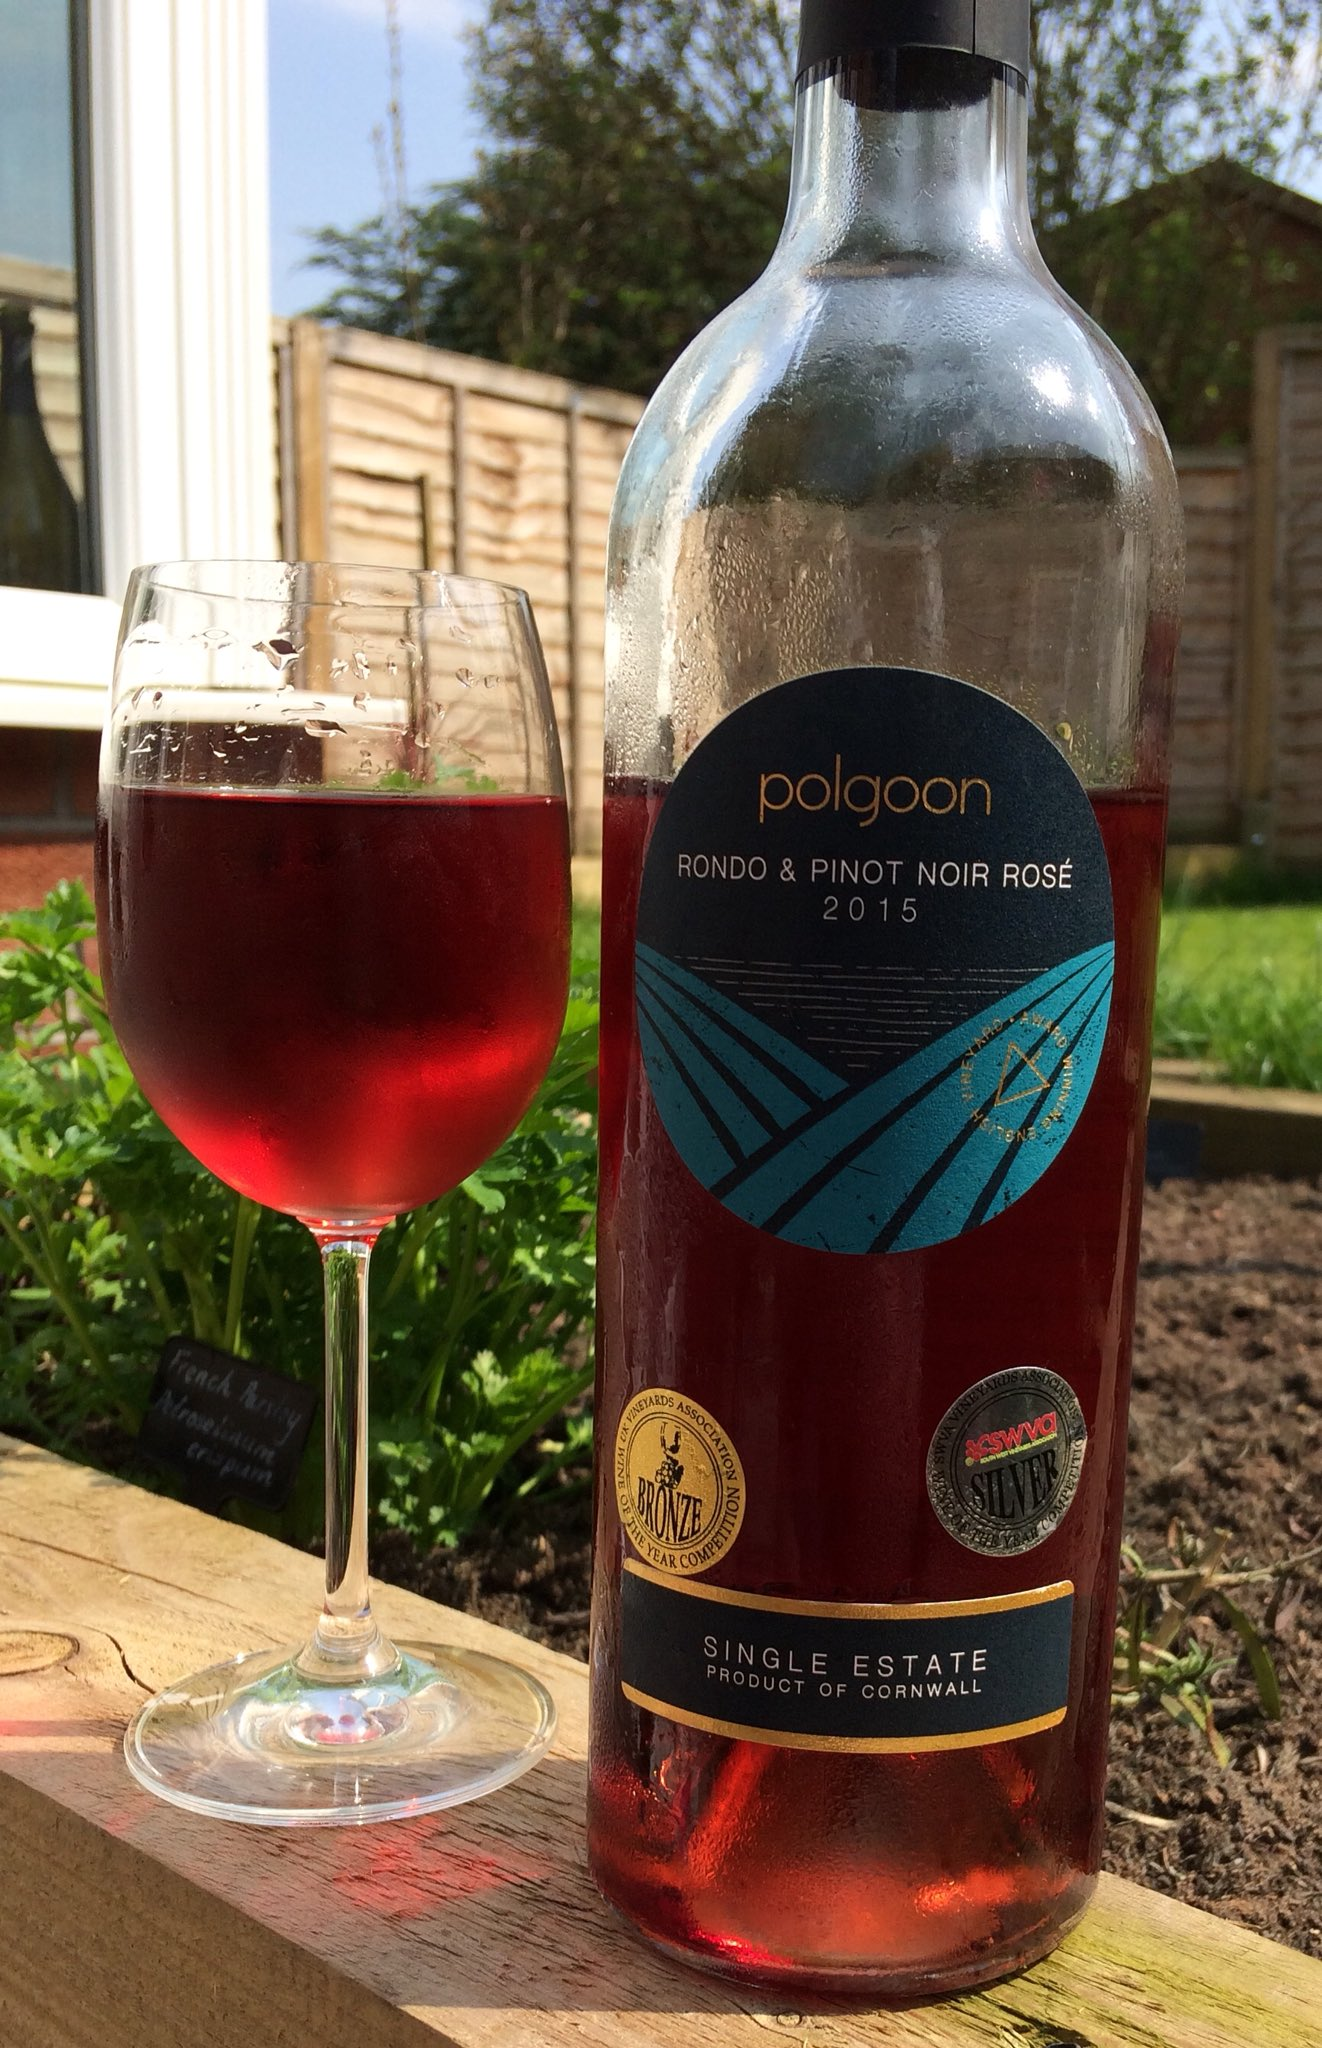 Eat Drink Fortywinks On Twitter Another Great Wine From Polgoon Highly Recommend It Polgoonwine Rose Rondo Pinotnoir Cornwall